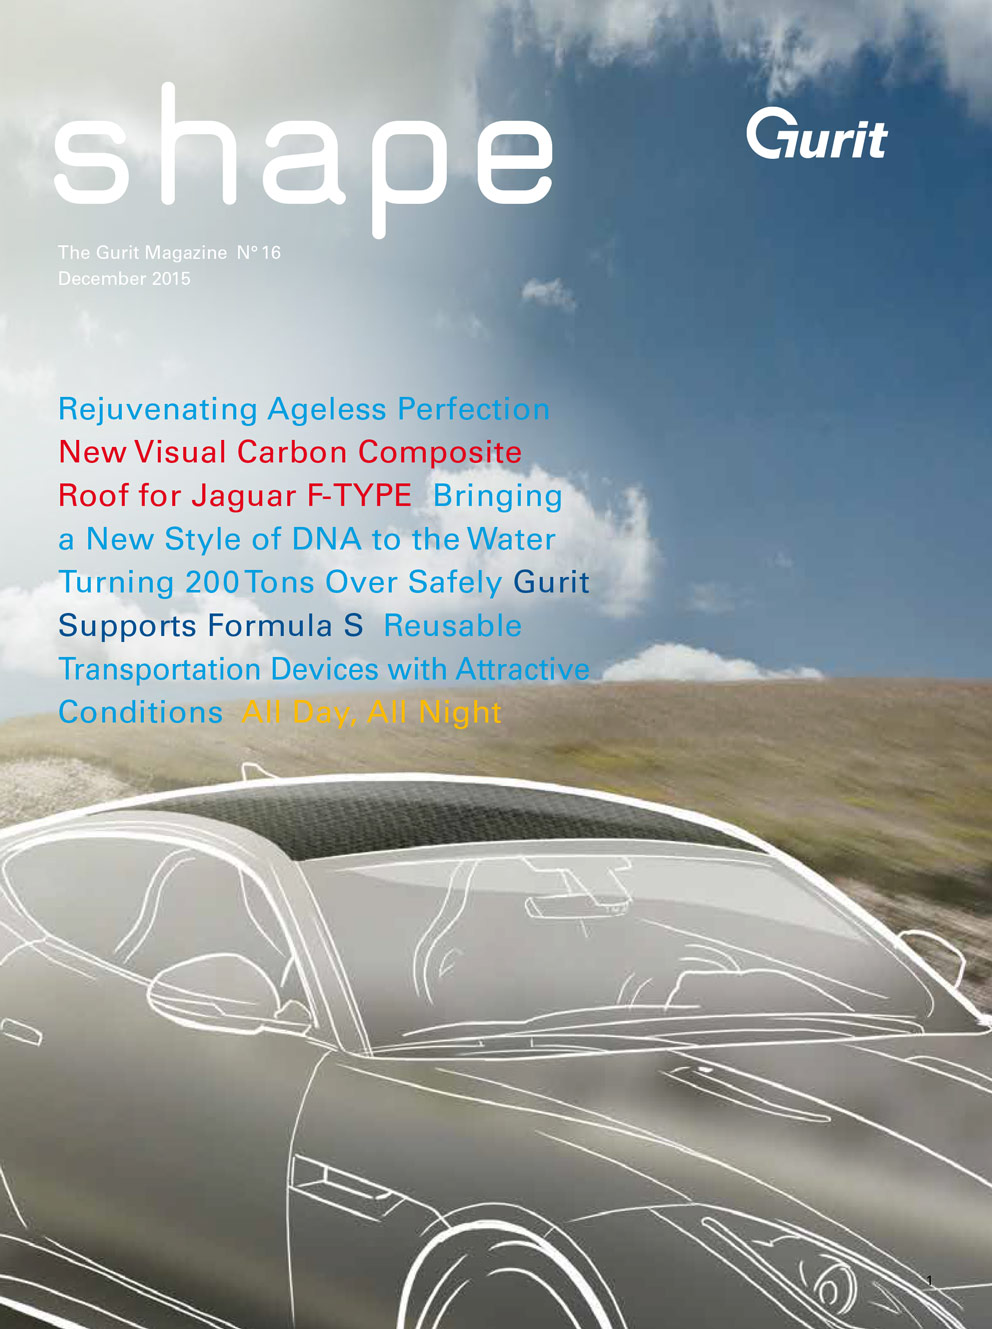 Shape - The Gurit Magazine - issue 16